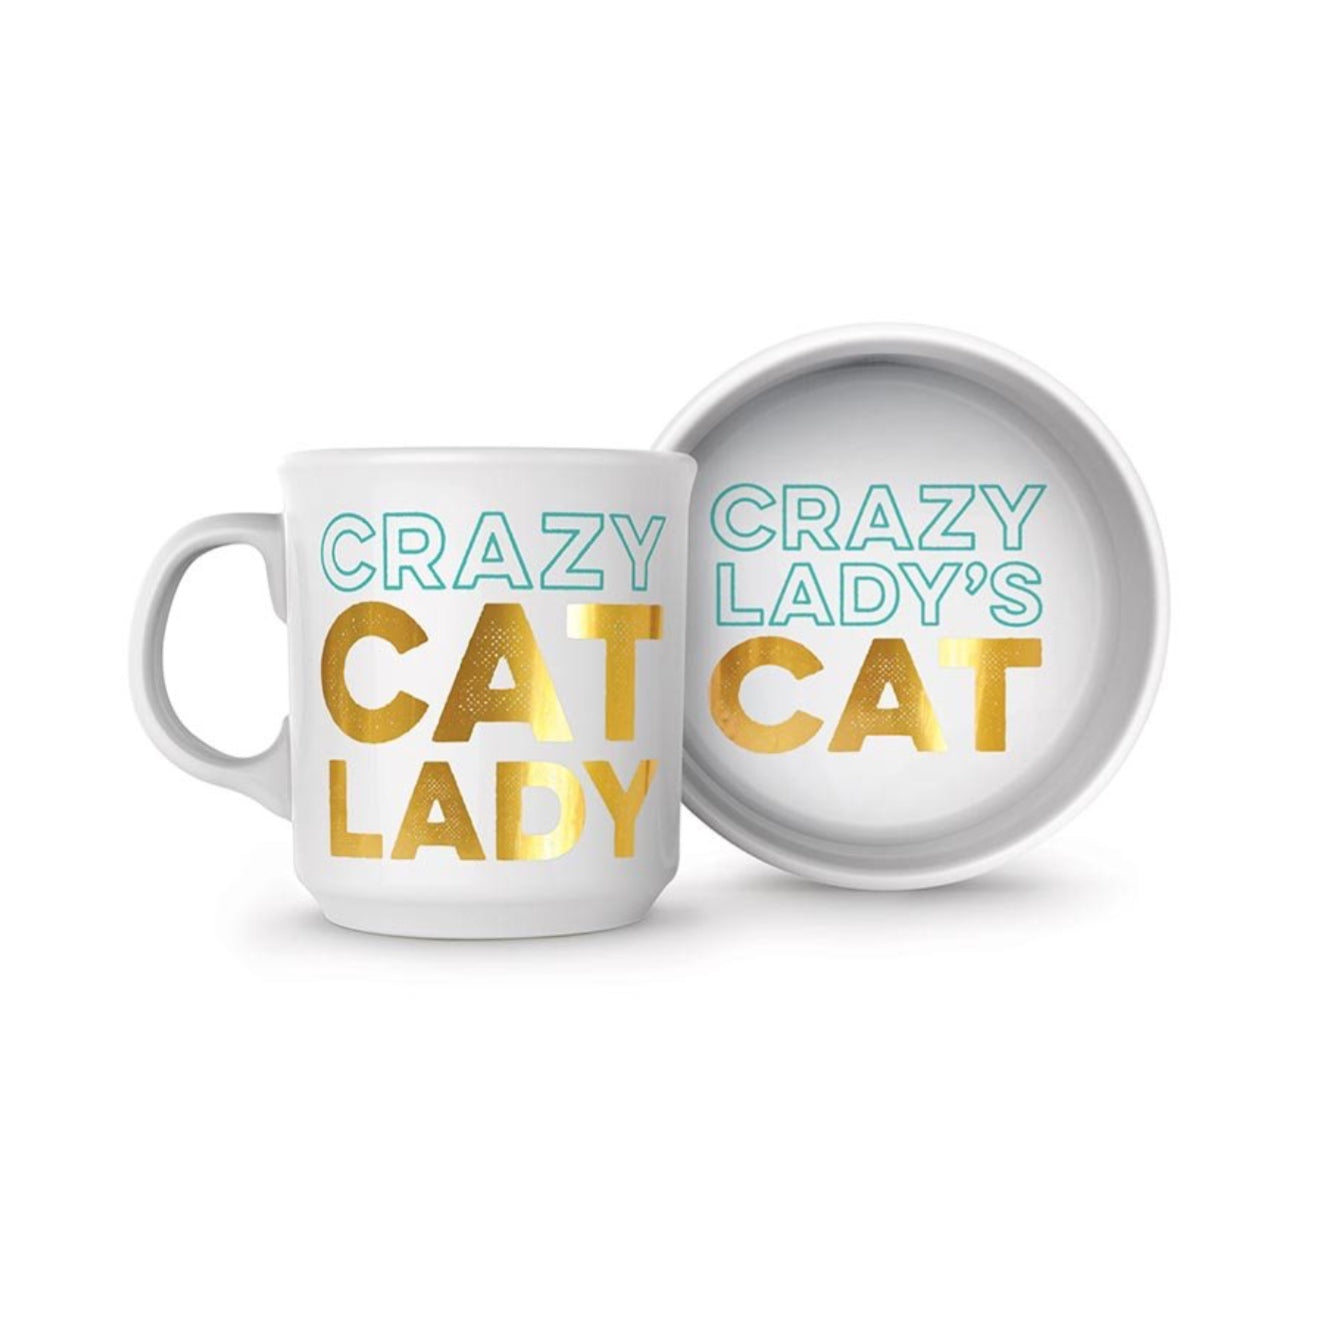 Fred / Cat Person - Bowl and Mug Set